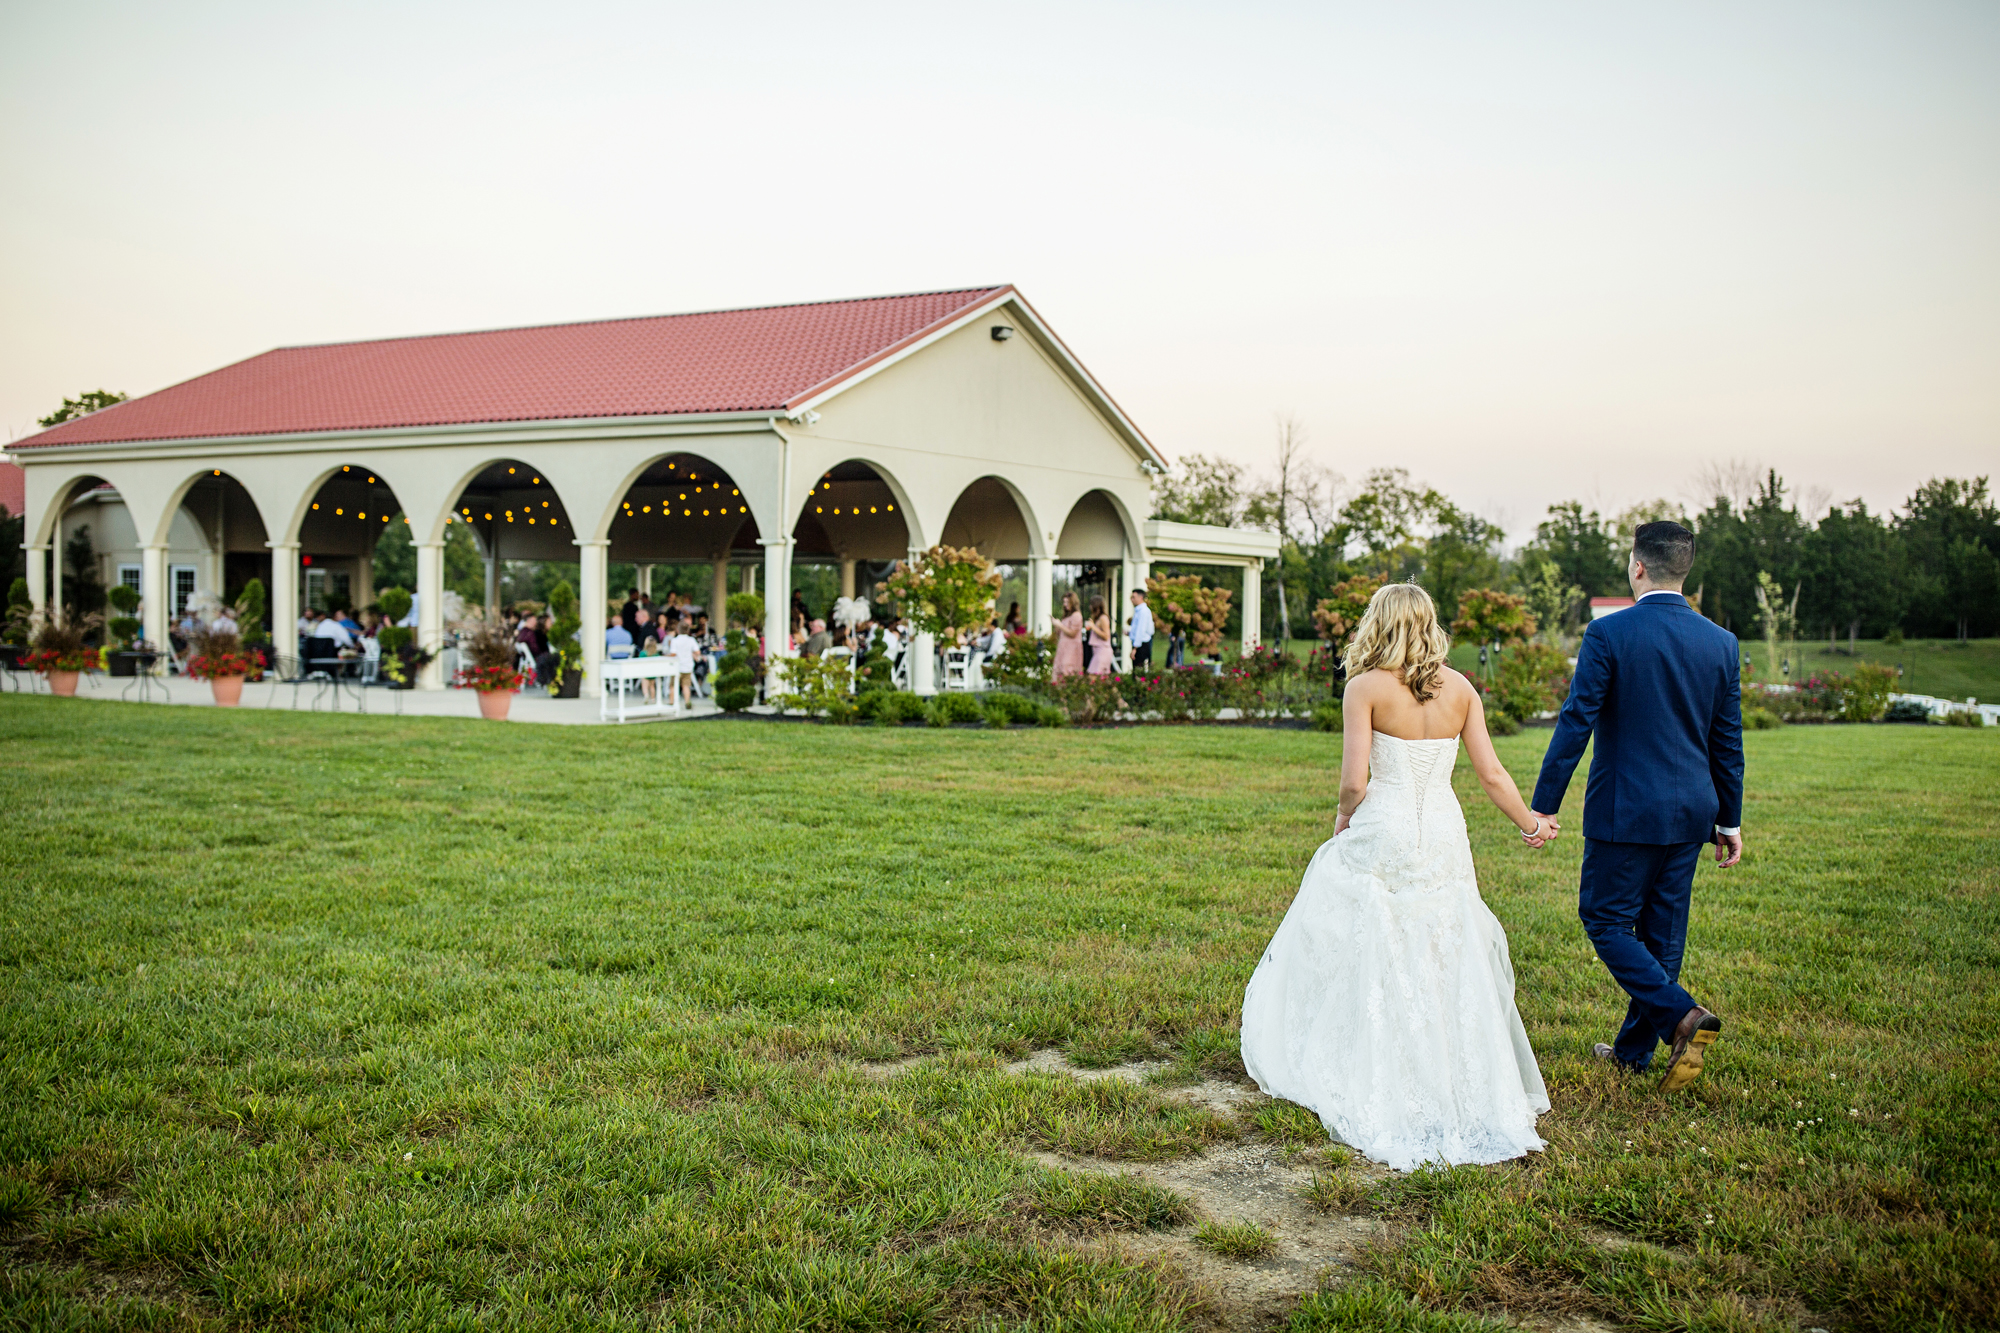 Seriously_Sabrina_Photography_Dayton_Ohio_Great_Gatsby_Wedding_Cedar_Springs_Pavillion_Harper_106.jpg